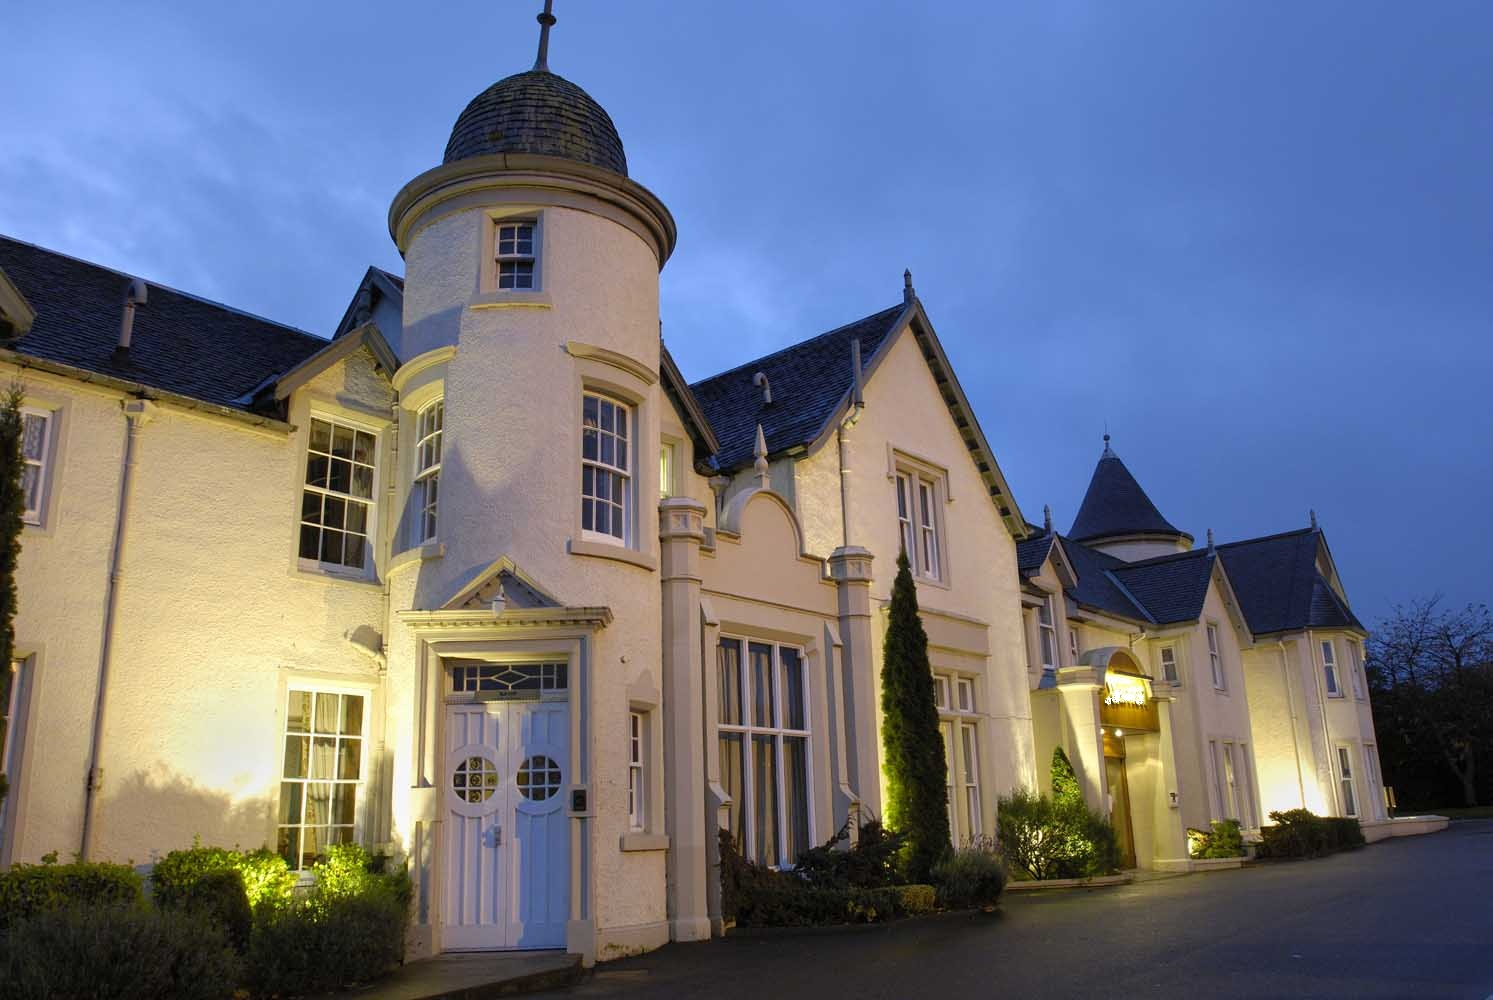 Kingsmills Hotel in inverness will host the event